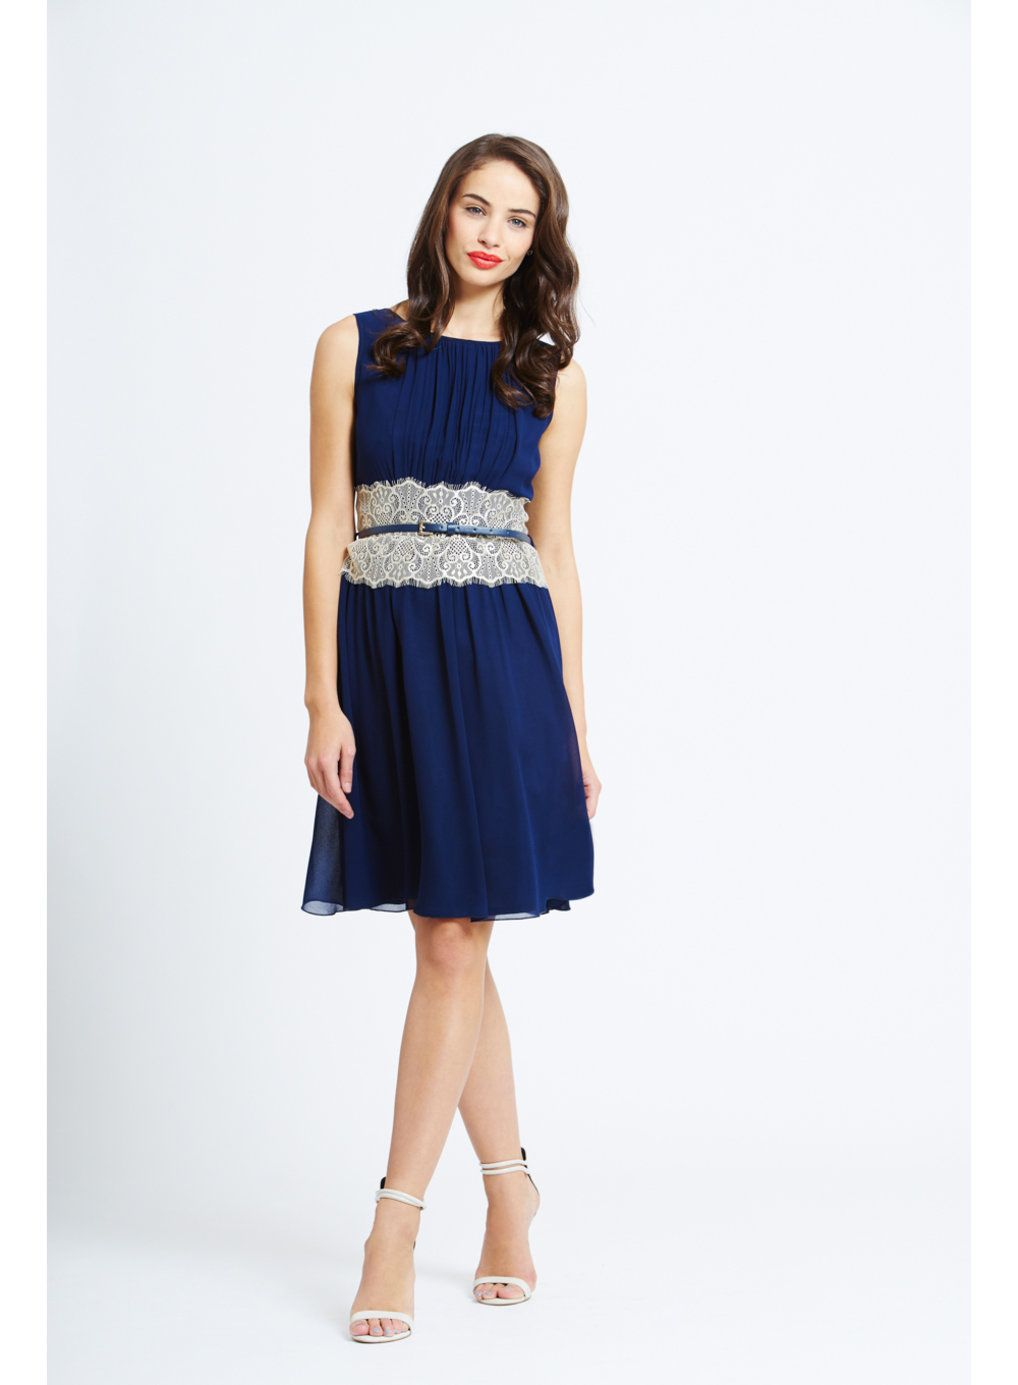 Lace dress navy  Photo  of Little Mistress Navy Chiffon Lace Dress  Dressed for the